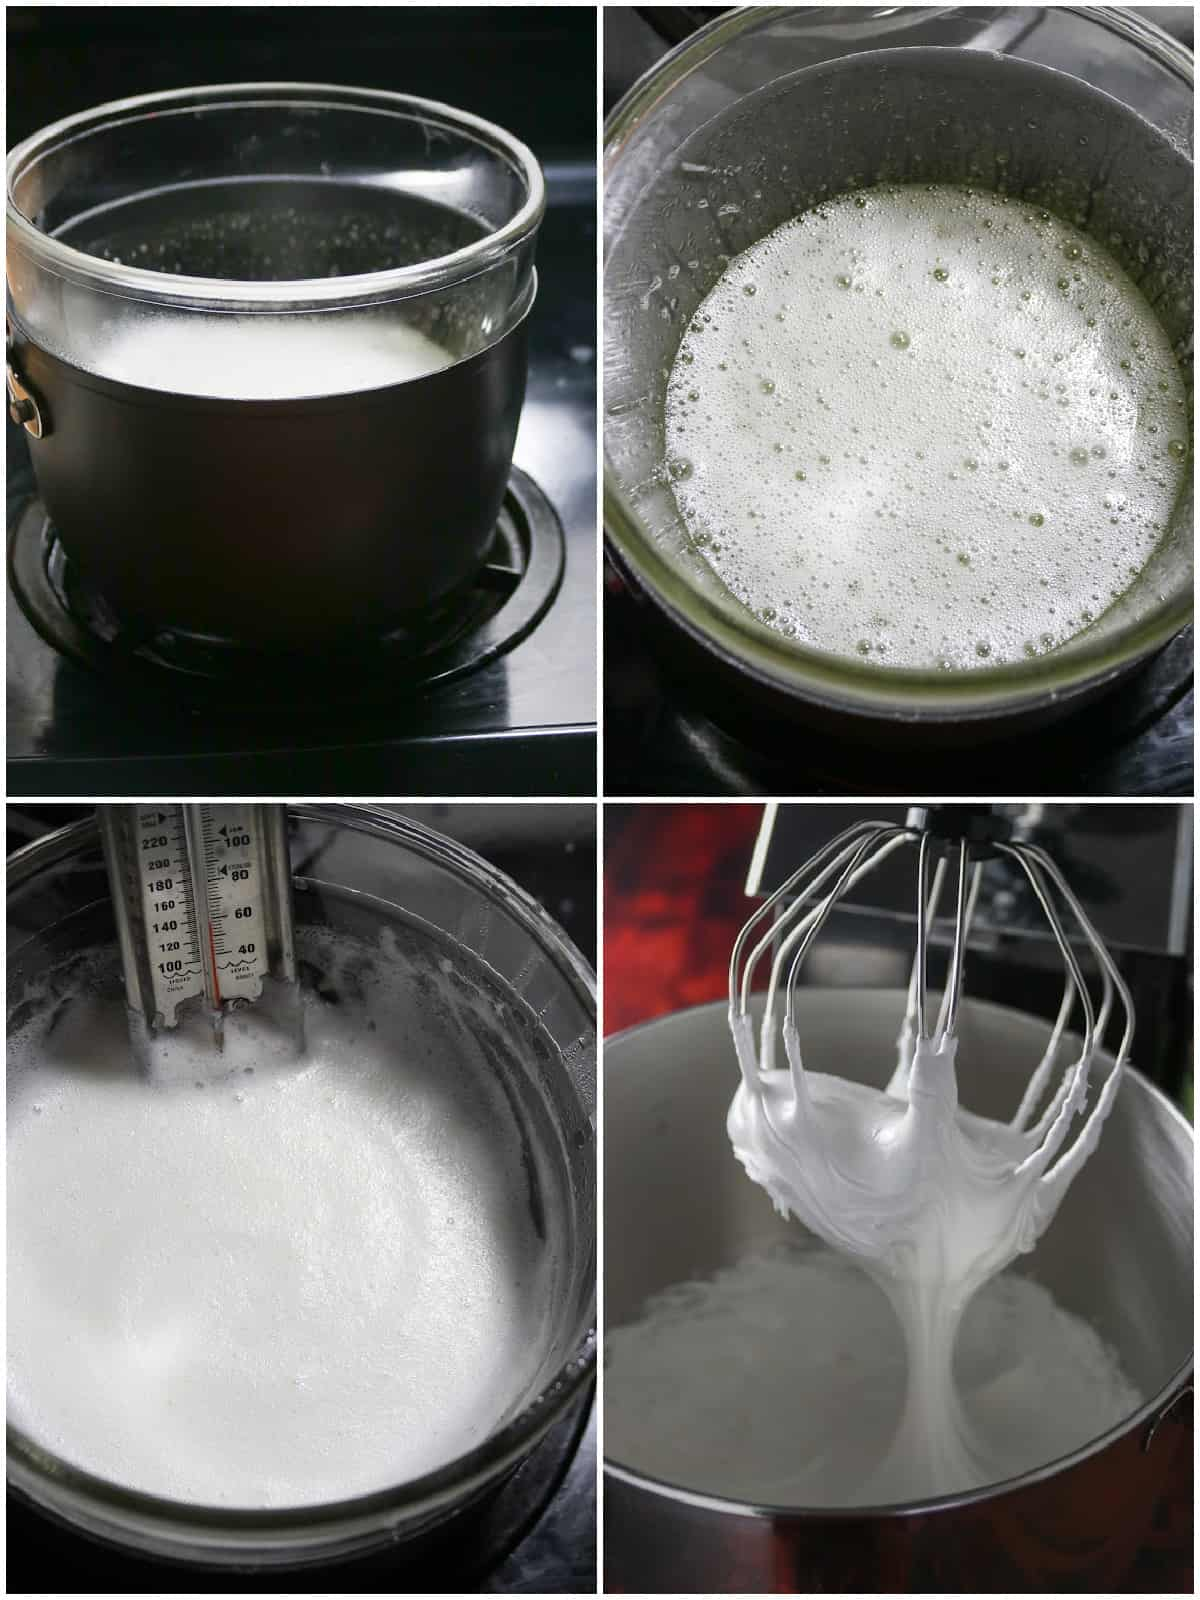 A collage showing how to make the swiss meringue buttercream in the double boiler.